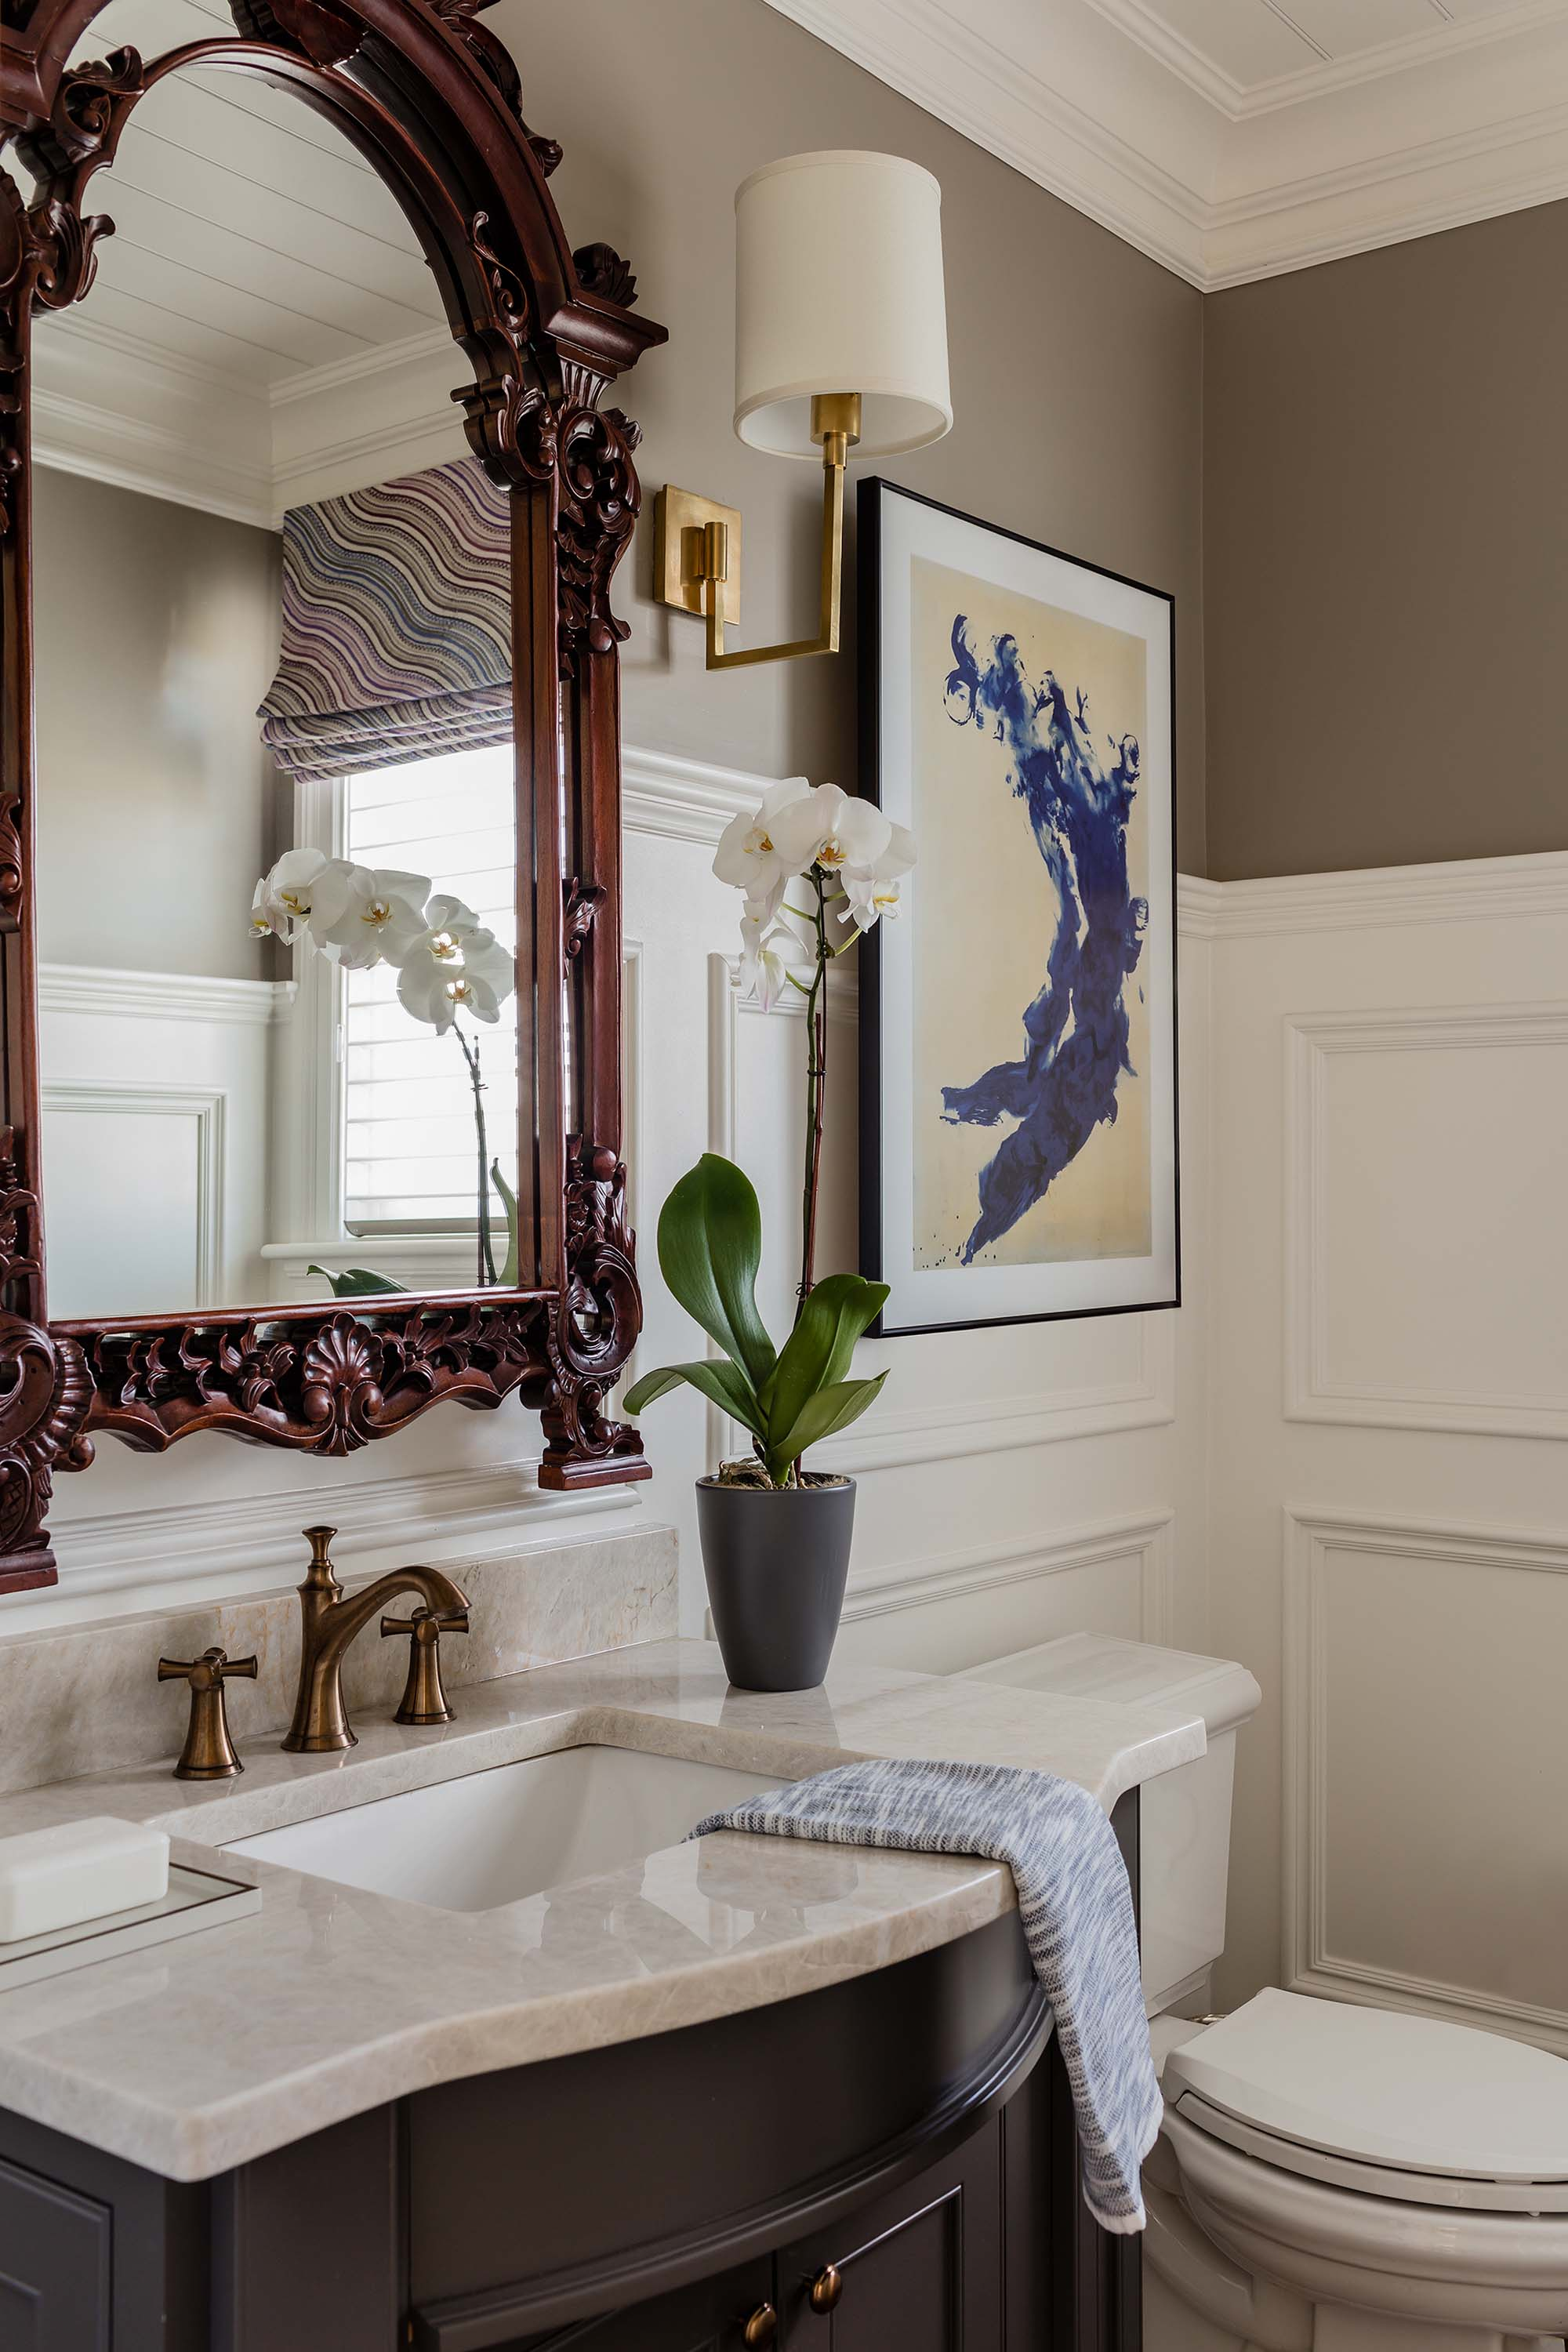 Powder room with marble sink, vintage faucet, and vintage mirror